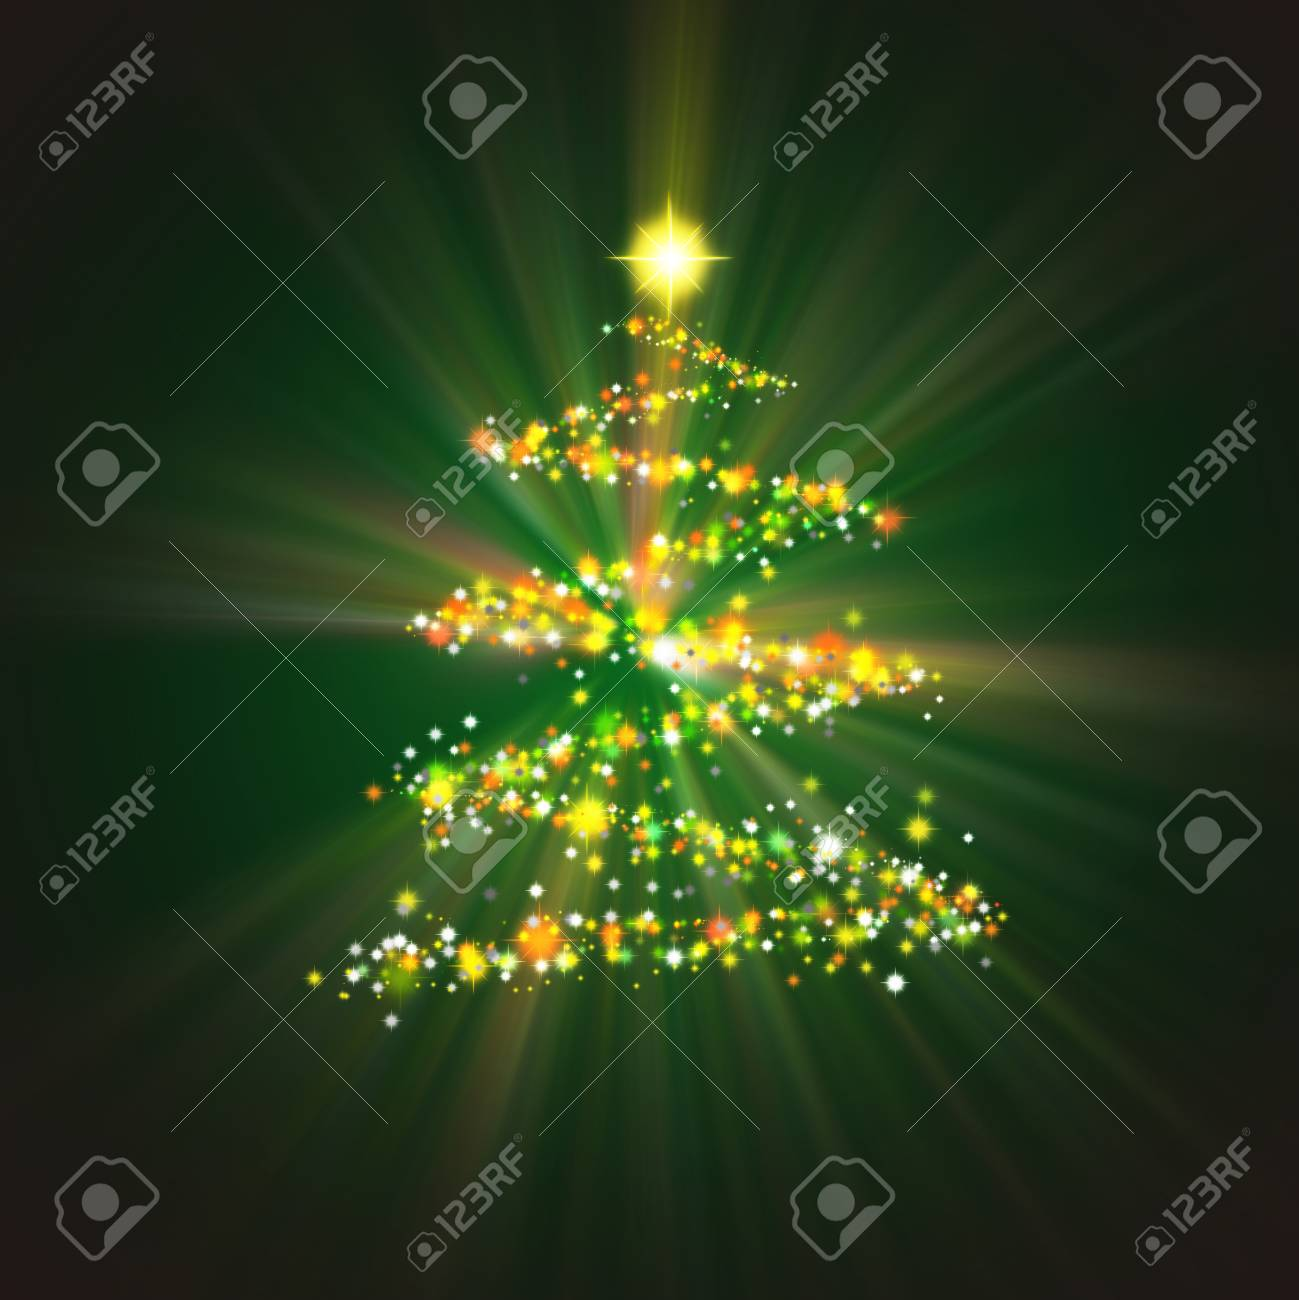 10+ Christmas Zoom Background Videos